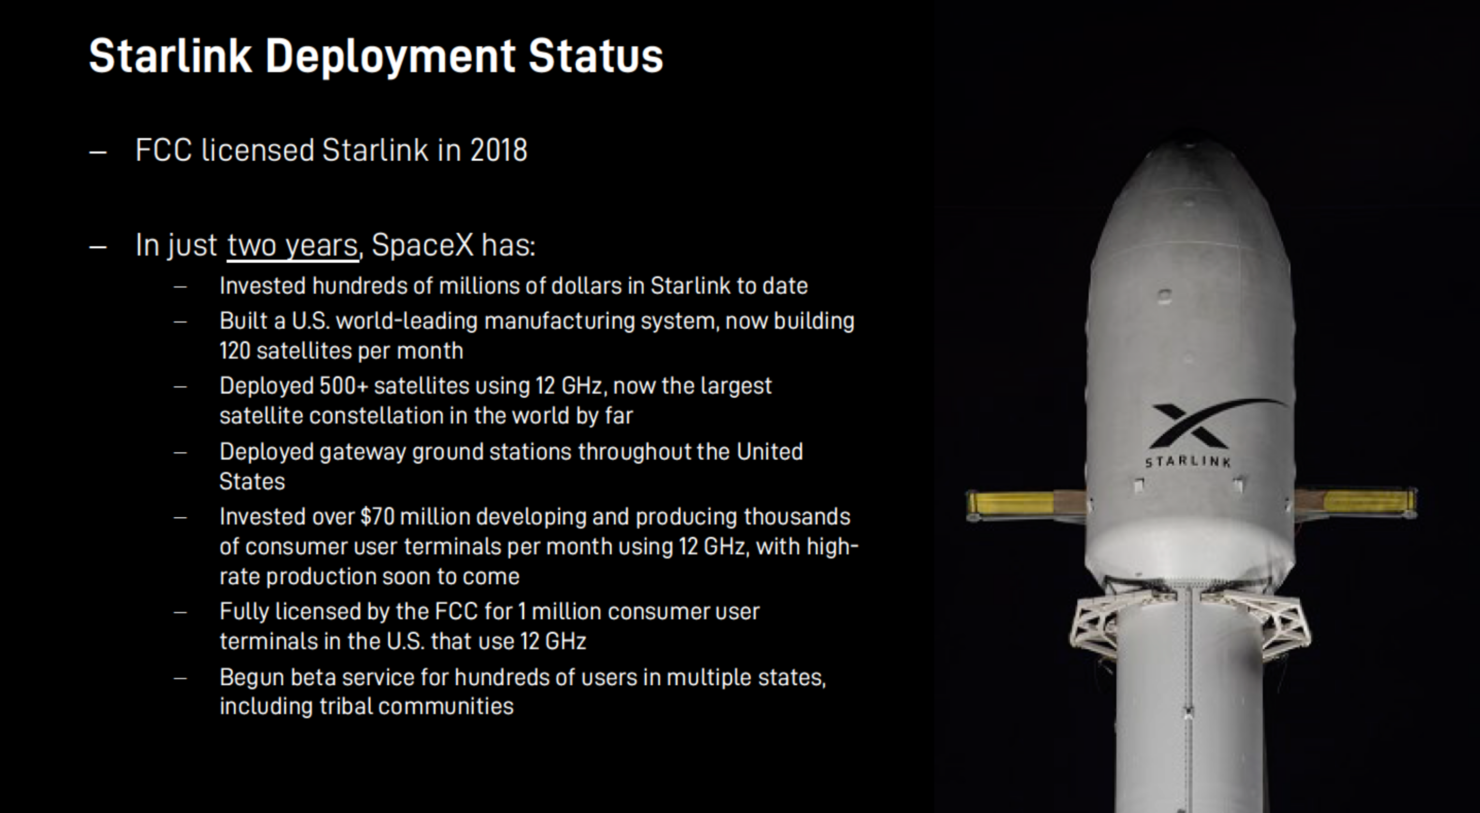 SpaceX invested over $70 million in Starlink Production